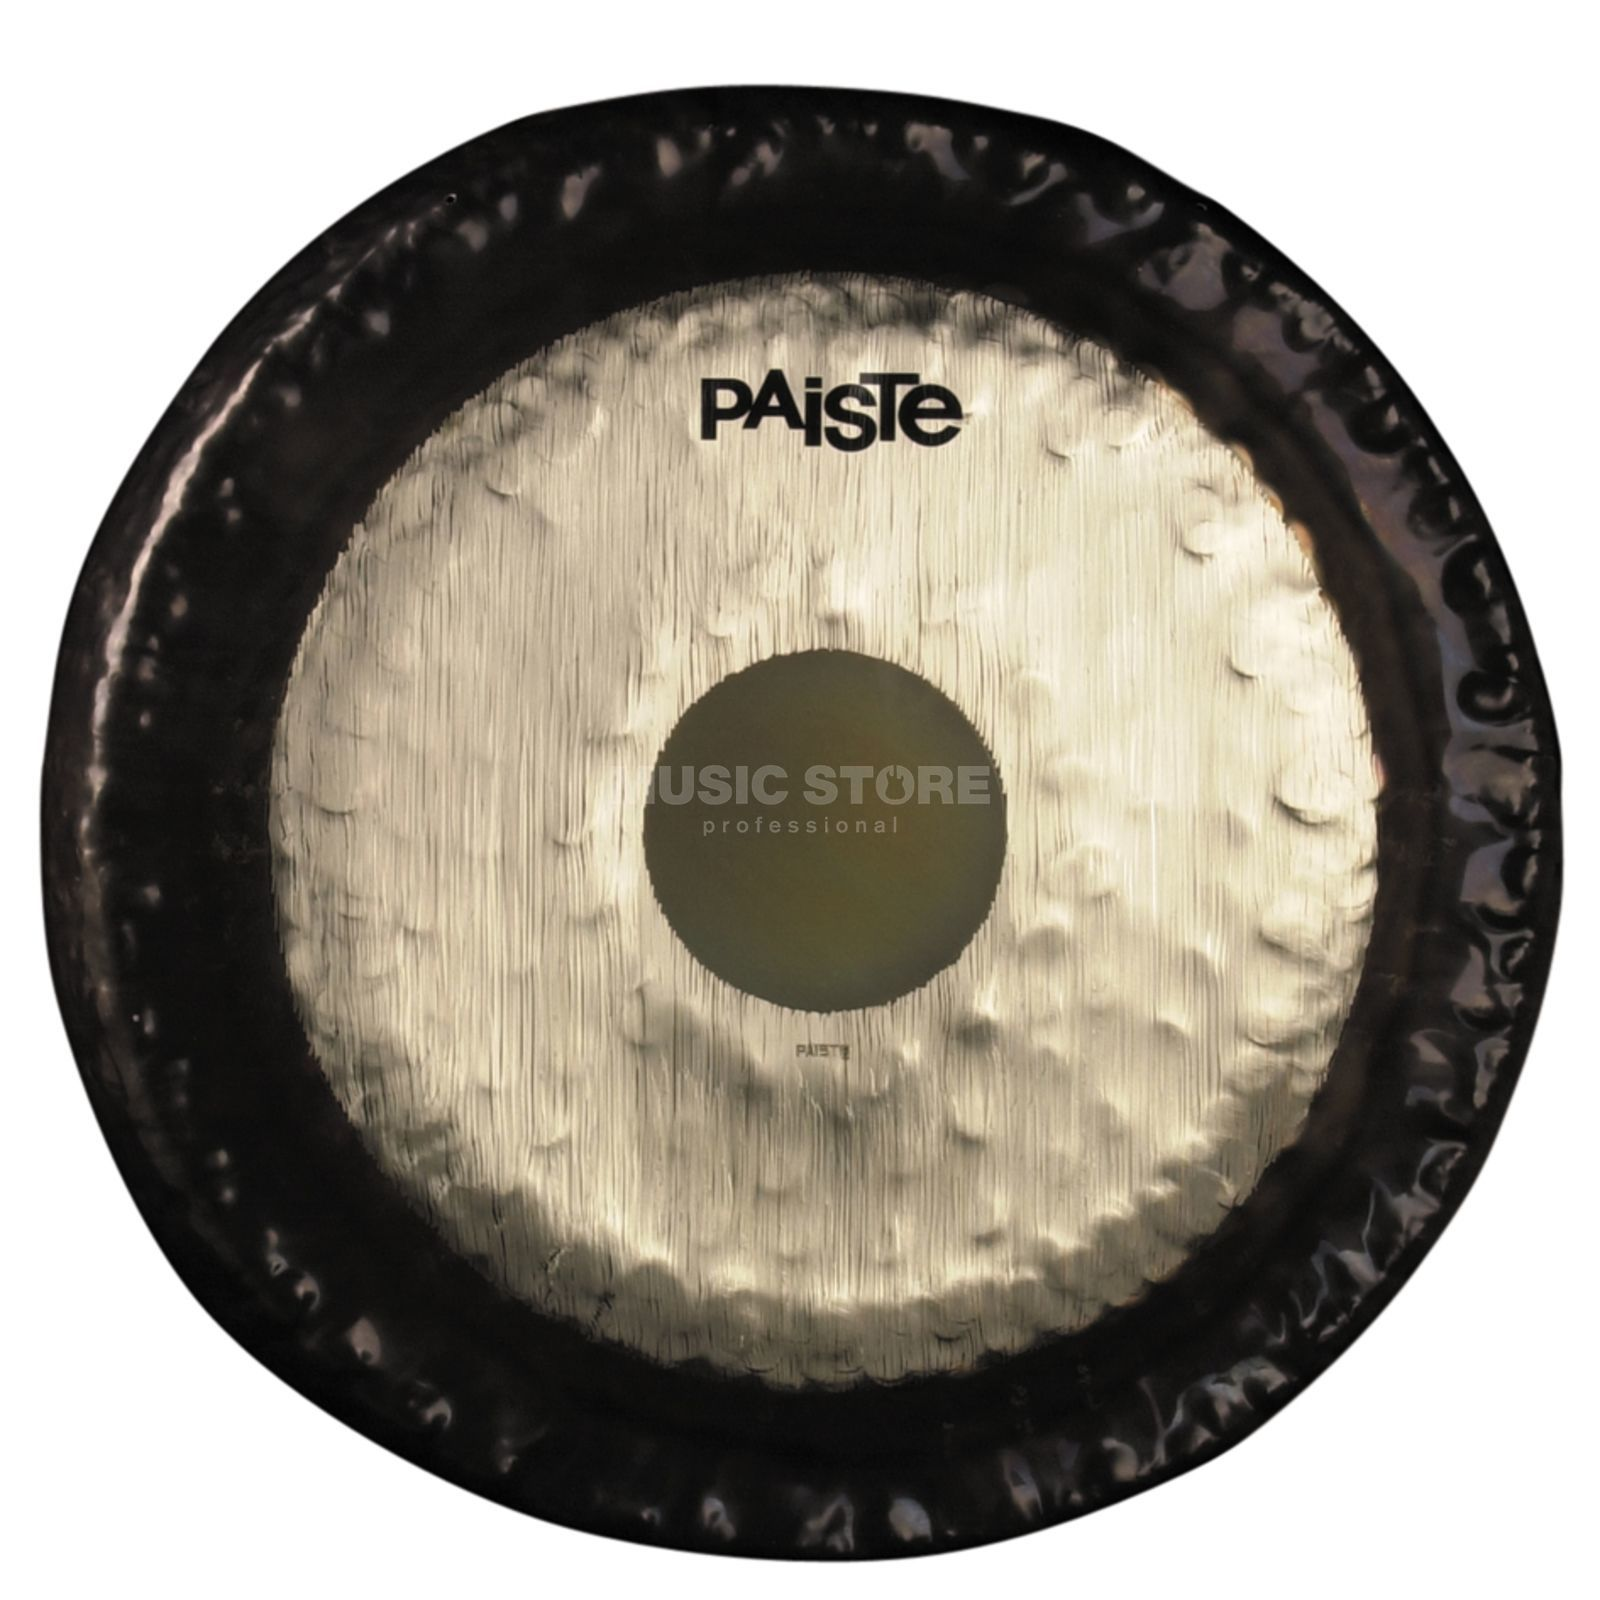 "Paiste Symphonic Gong 24""  Product Image"